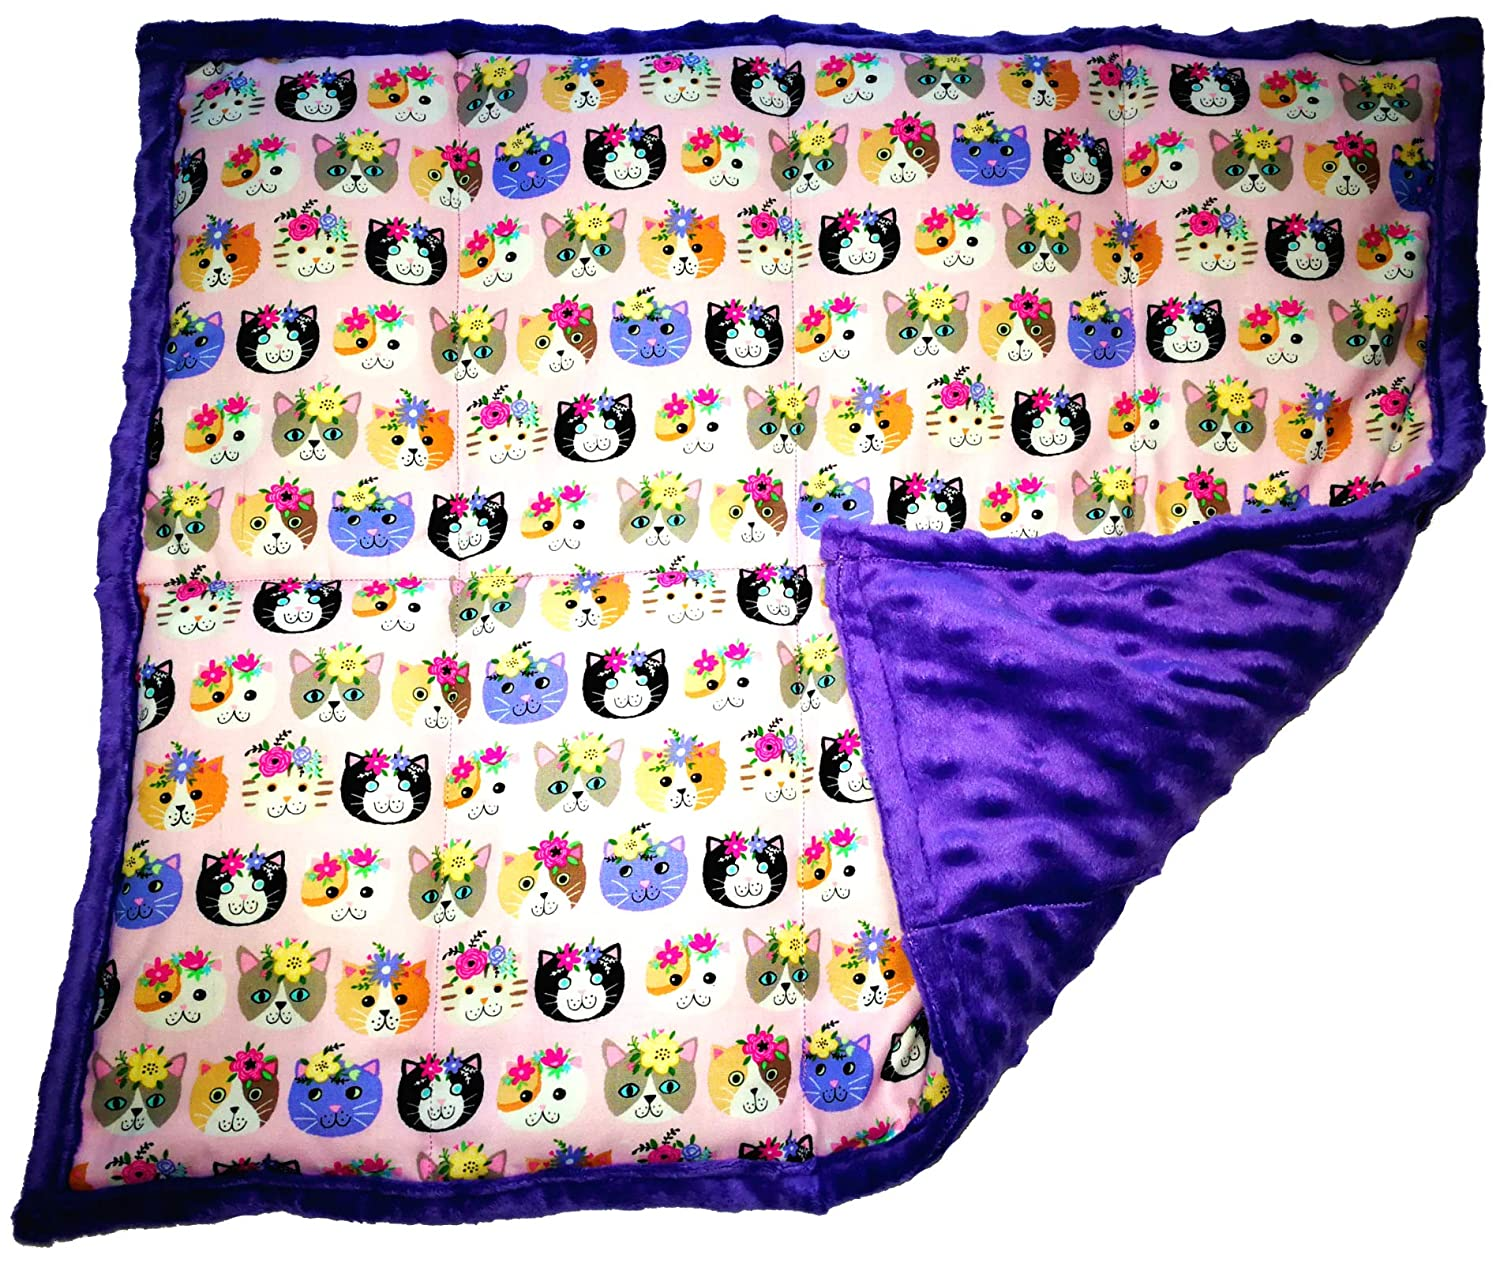 ReachTherapy Solutions Tickled Pink 3 lbs Weighted Lap Pad for Kids Click to See More Colors /& Sizes Portable Lap Blanket for School